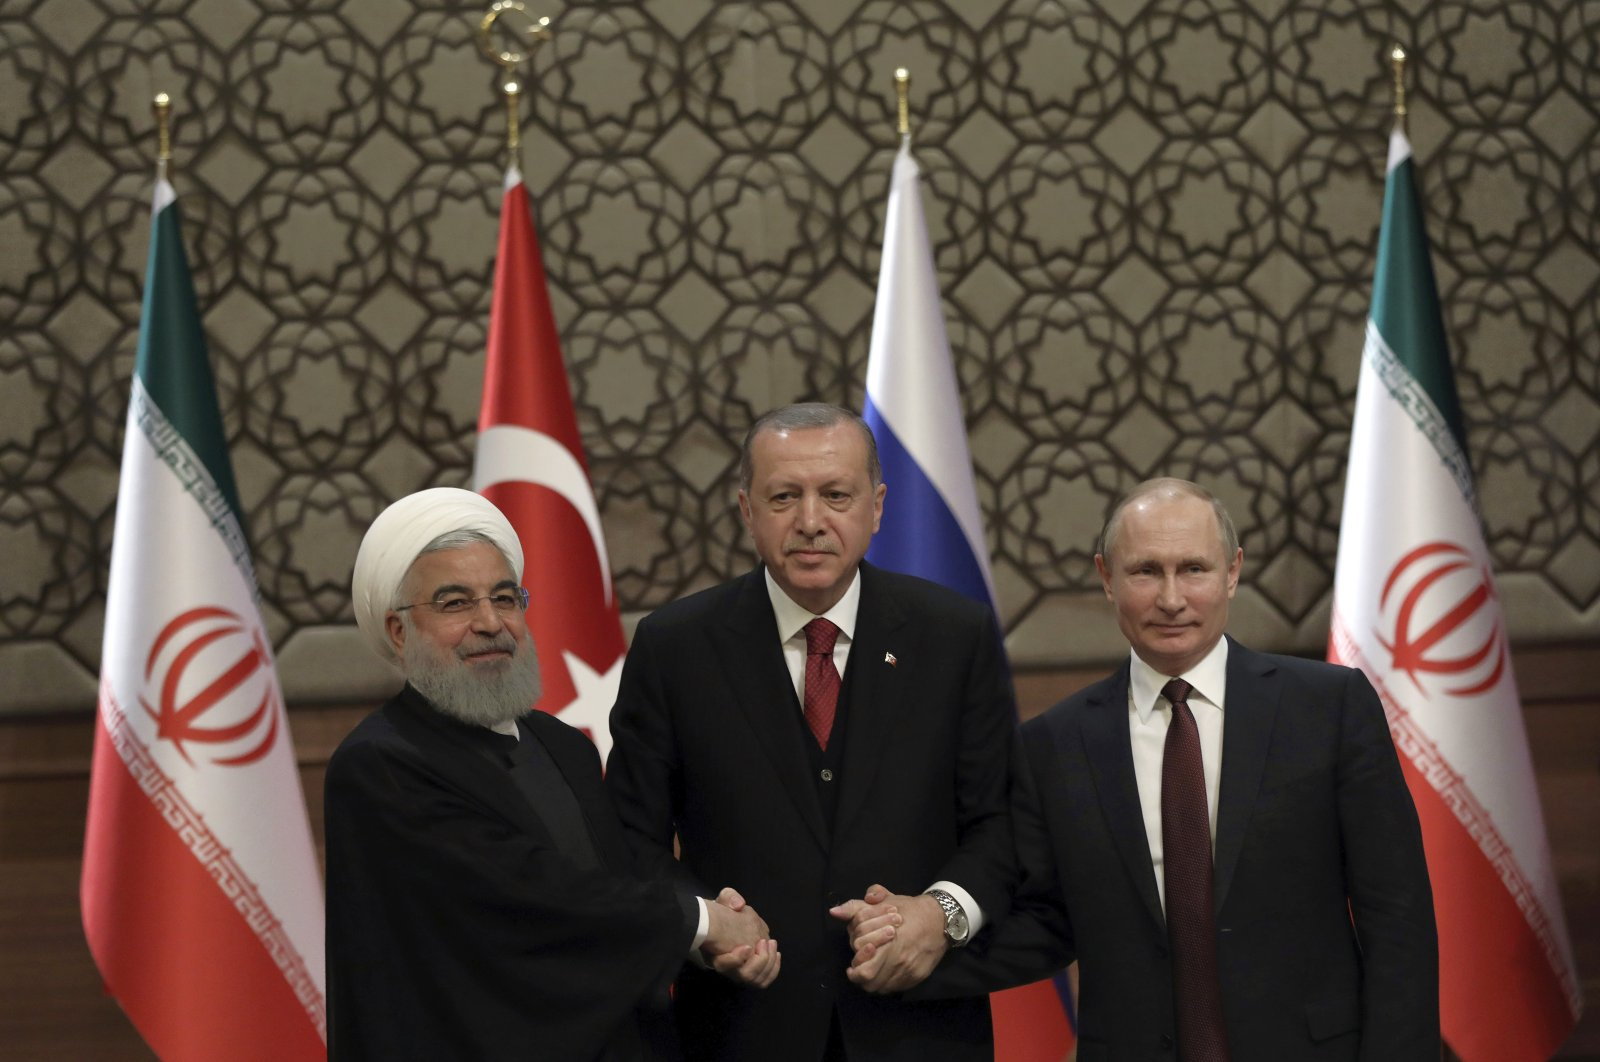 Iranian President Hassan Rouhani (L), Turkish President Recep Tayyip Erdogan (C) and Russian President Vladimir Putin (R) join hands after a joint news conference in Ankara, Turkey, April 4, 2018. (AP Photo)